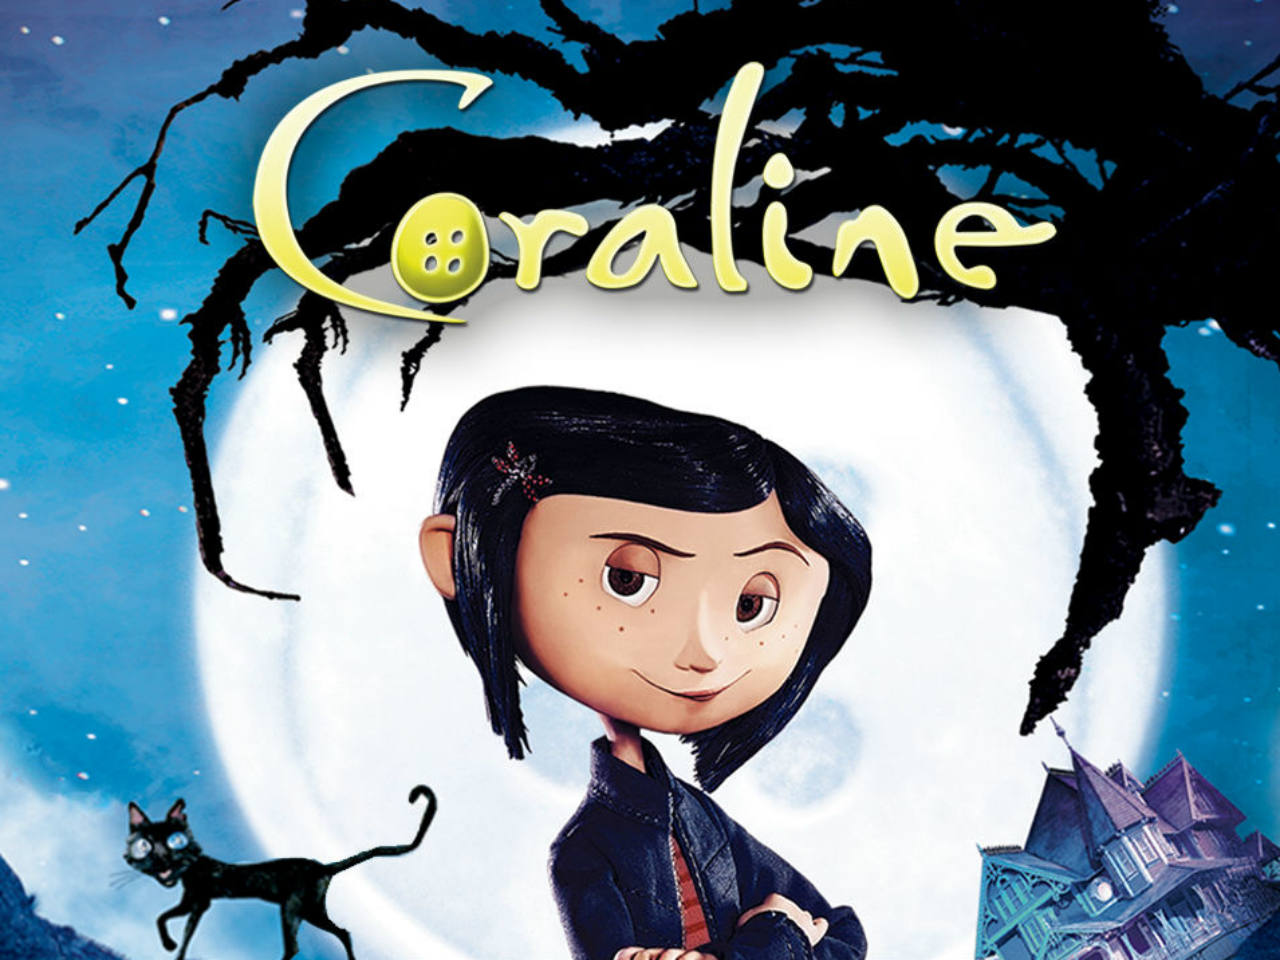 A movie poster of the kids' movie Coraline